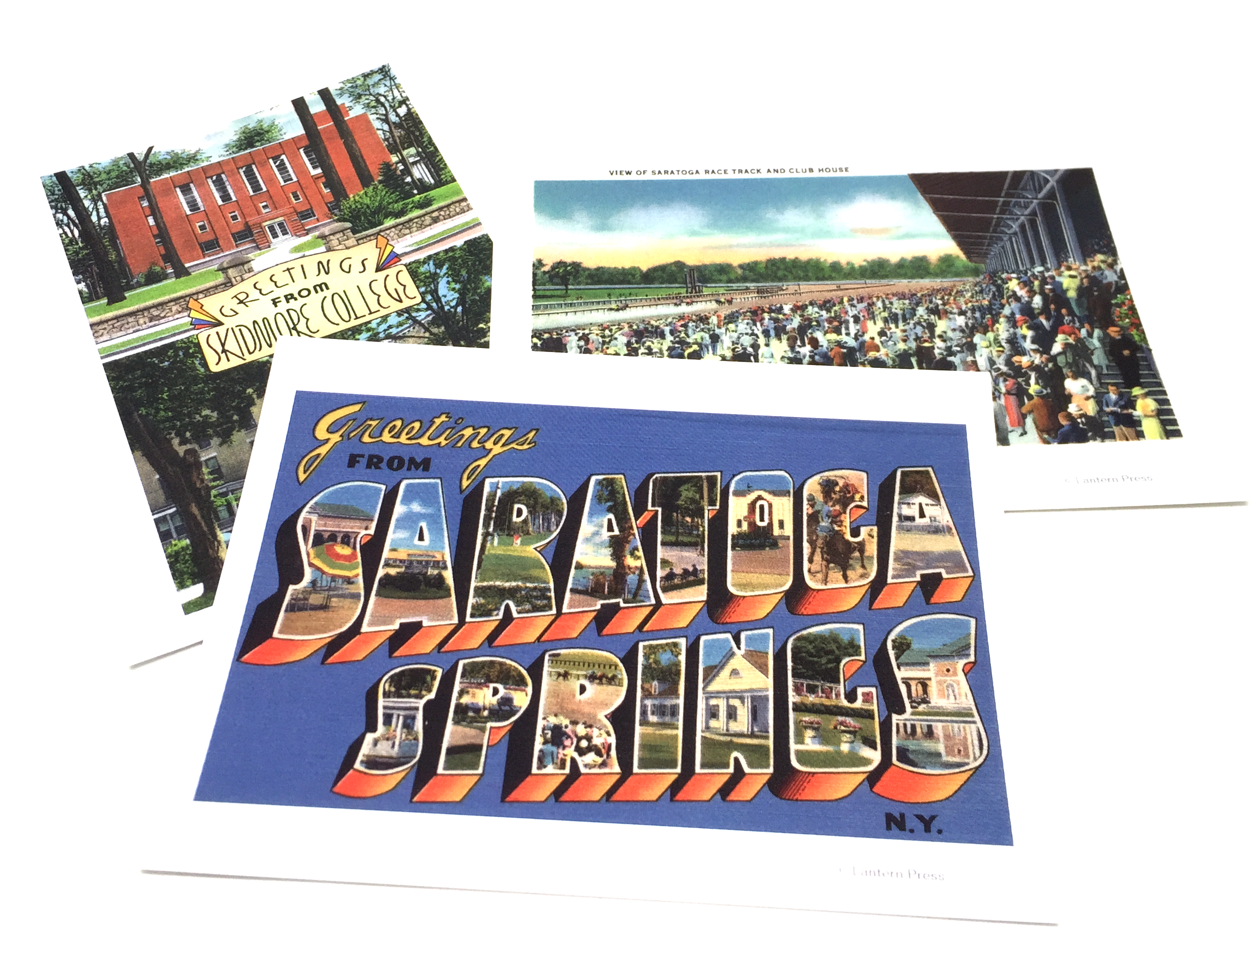 3 Pack of Saratoga post cards, iconic images printed with a gloss finish on heavy card stock that look equally awesome in a mailbox or frame.